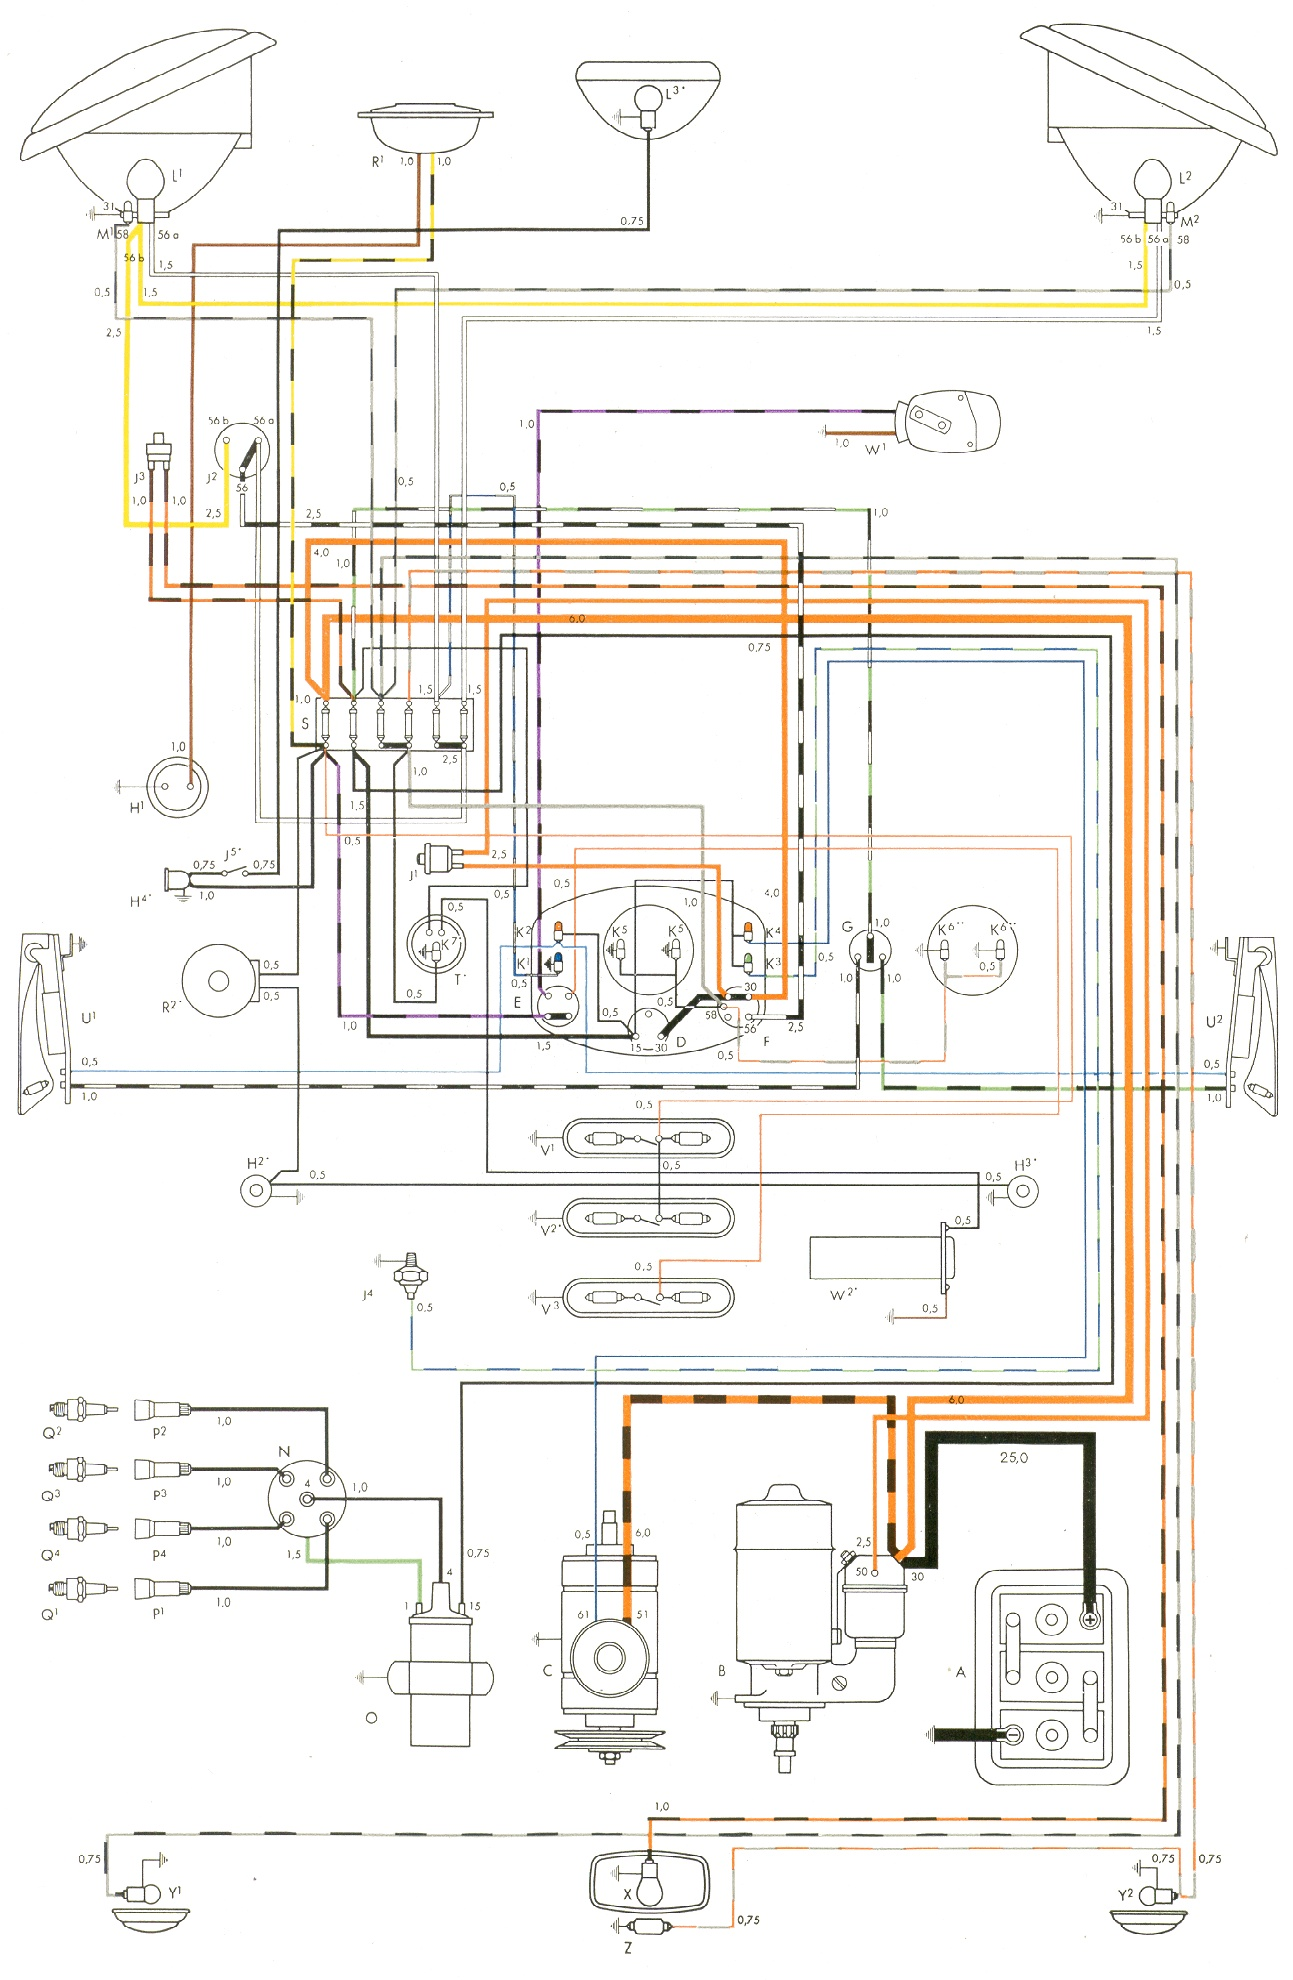 bus 54 1964 vw bug wiring diagram 67 vw wiring diagram \u2022 free wiring Volkswagen Type 2 Wiring Harness at mifinder.co